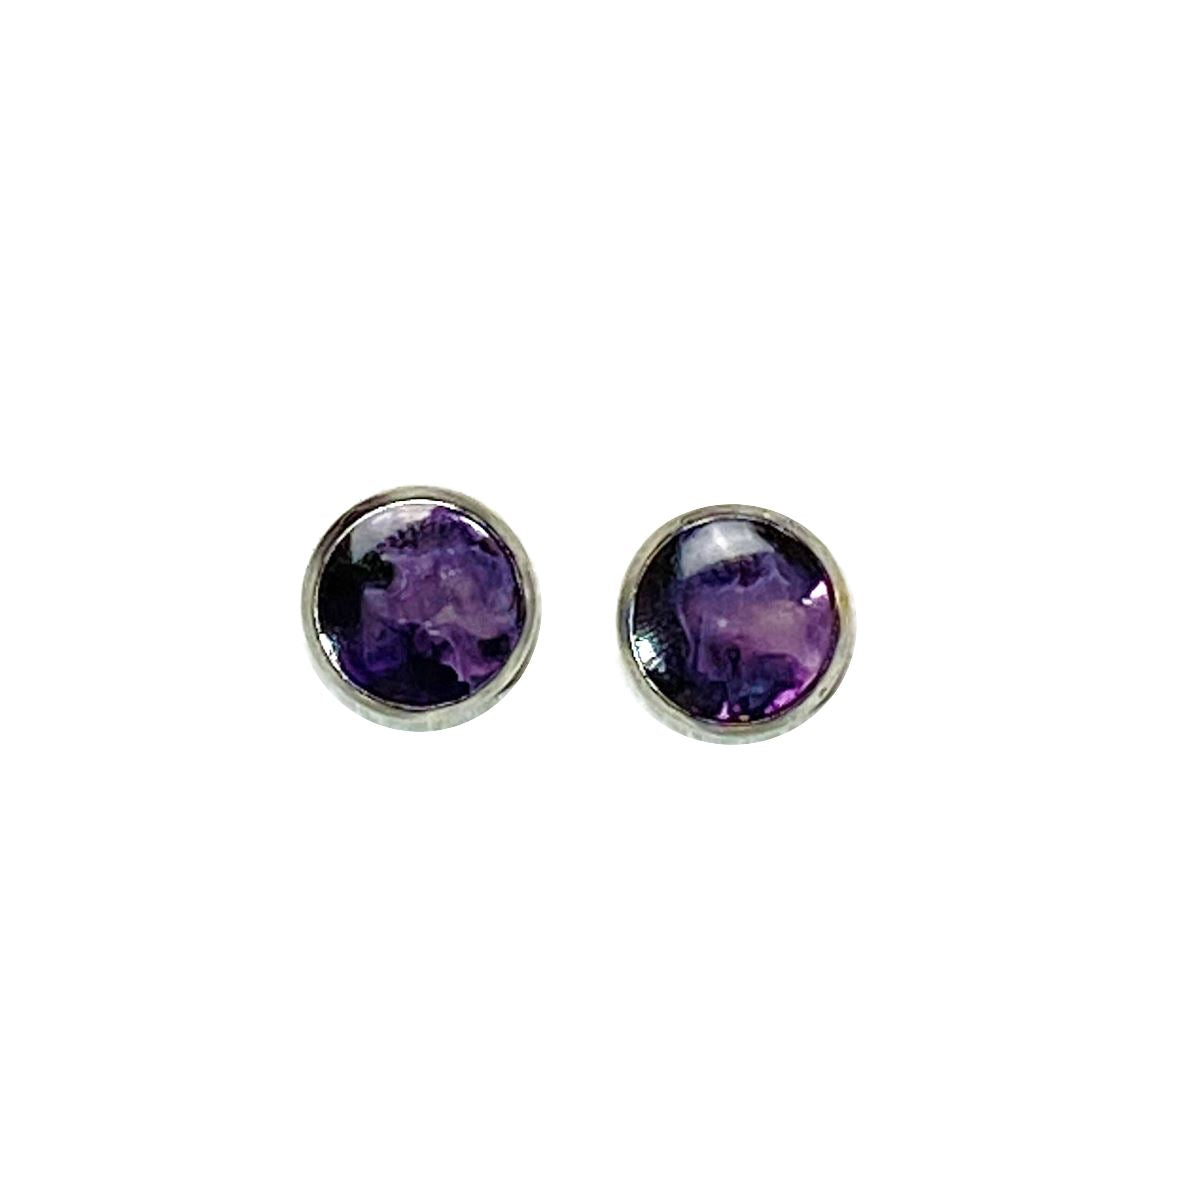 Nebulae - purple black 8mm stud earrings Deanna Dot Store